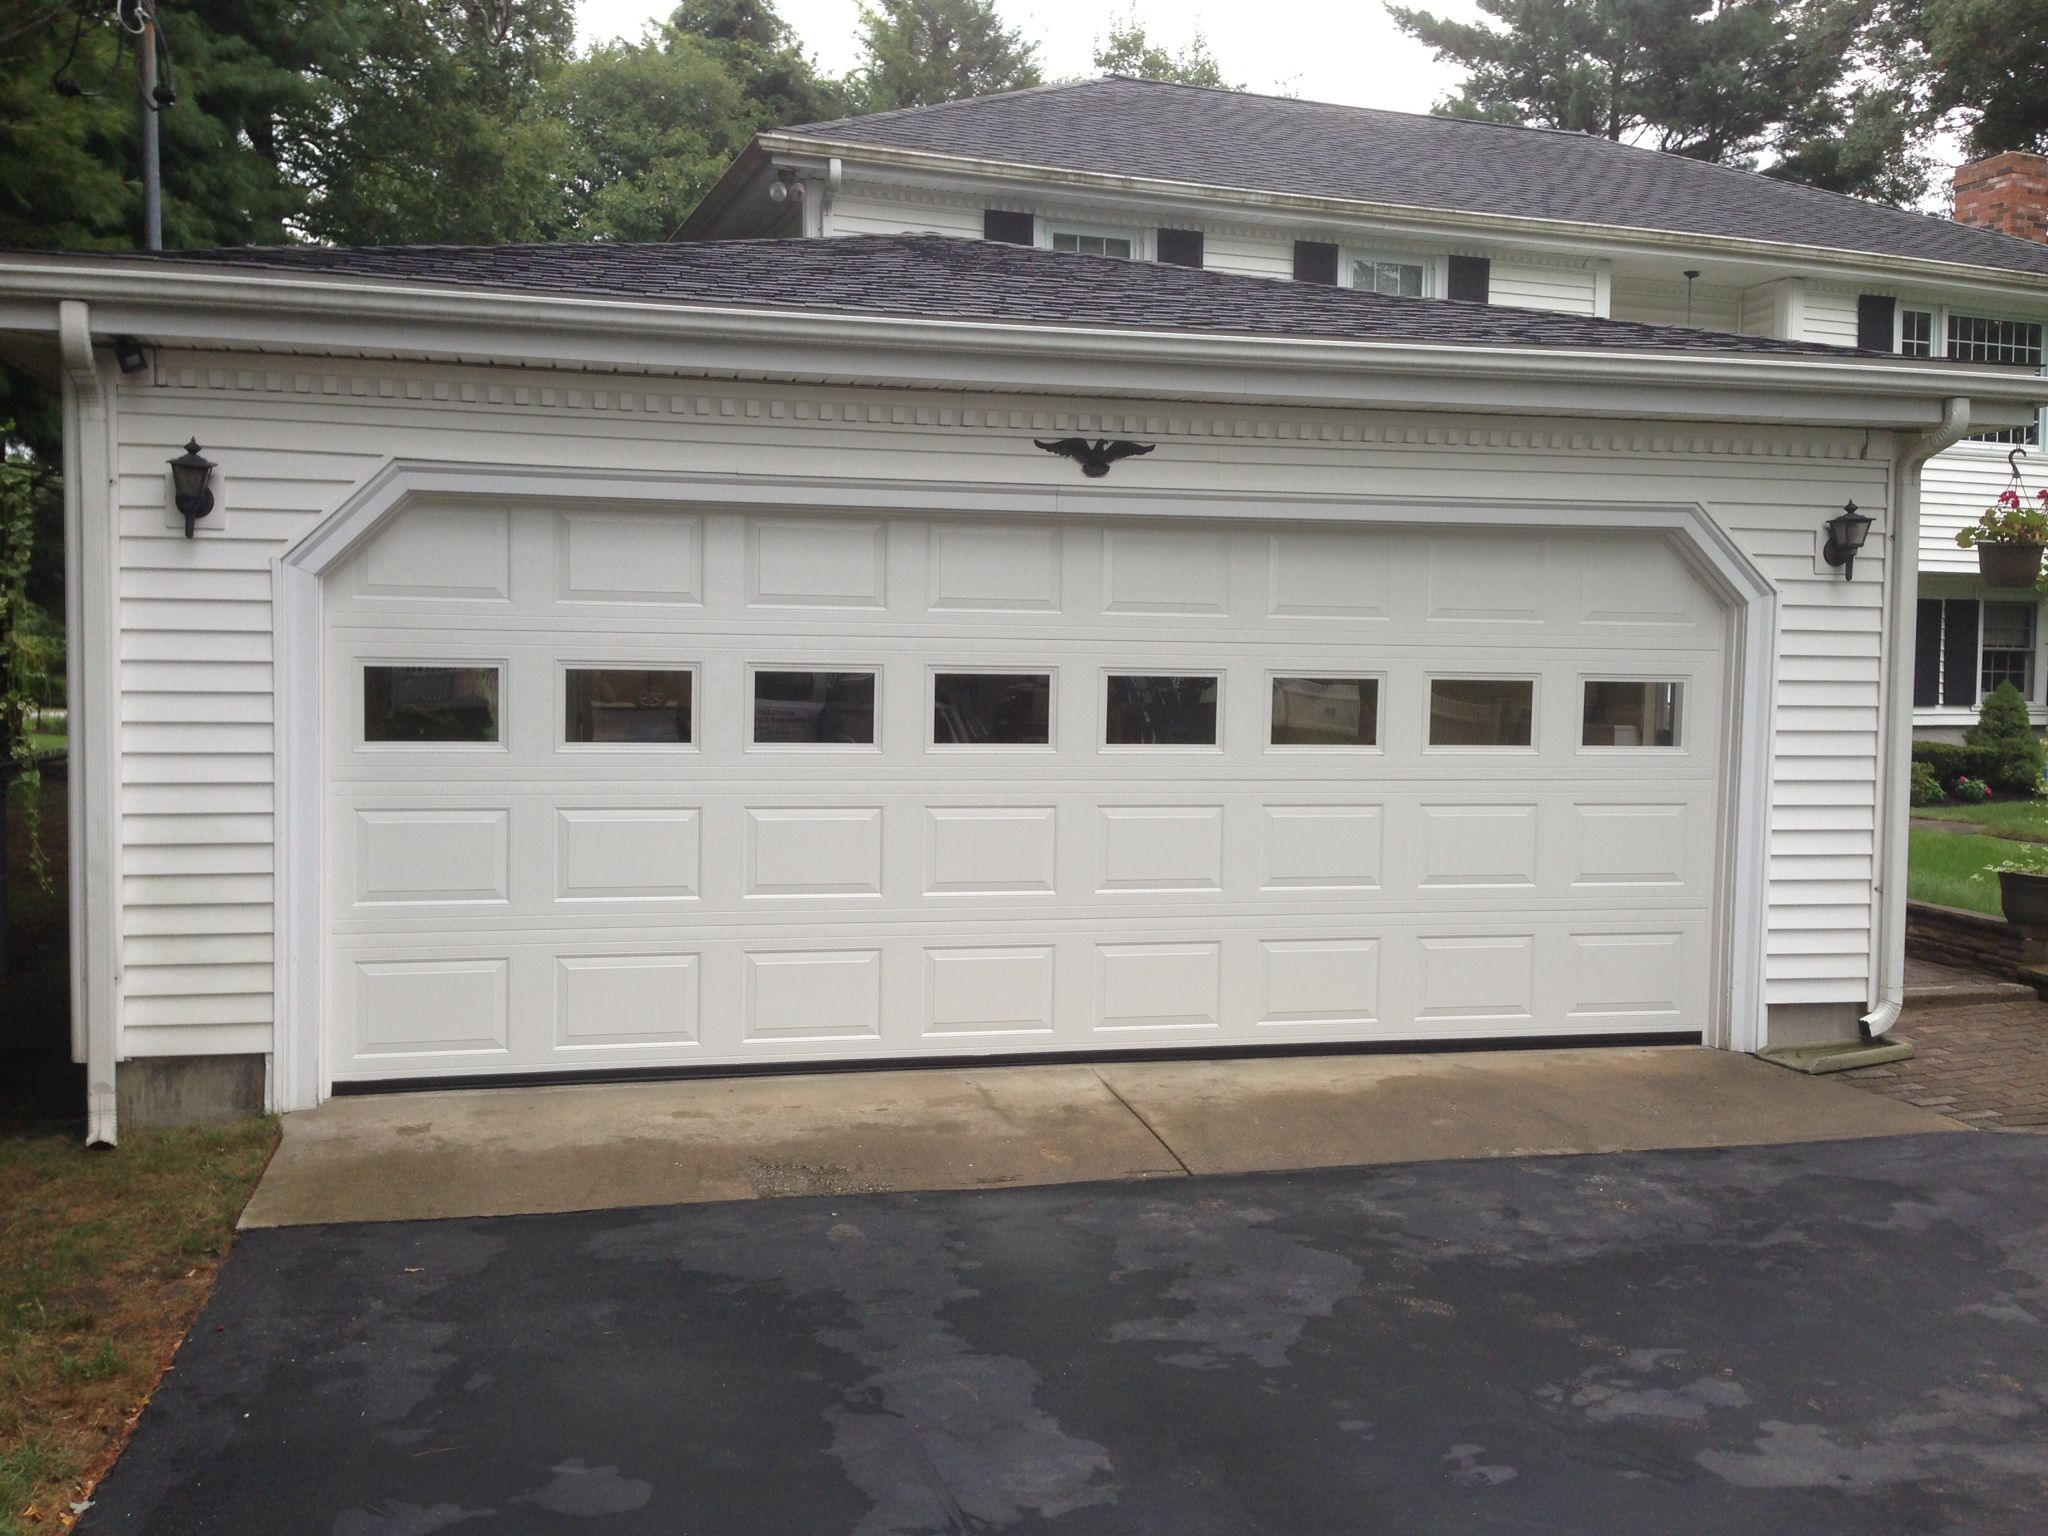 Haas Model 680 Steel Raised Panel Garage Doors In White With Plain Glass Installed By Mortland Overhead Doo Garage Doors Garage Door Panels Garage Door Styles